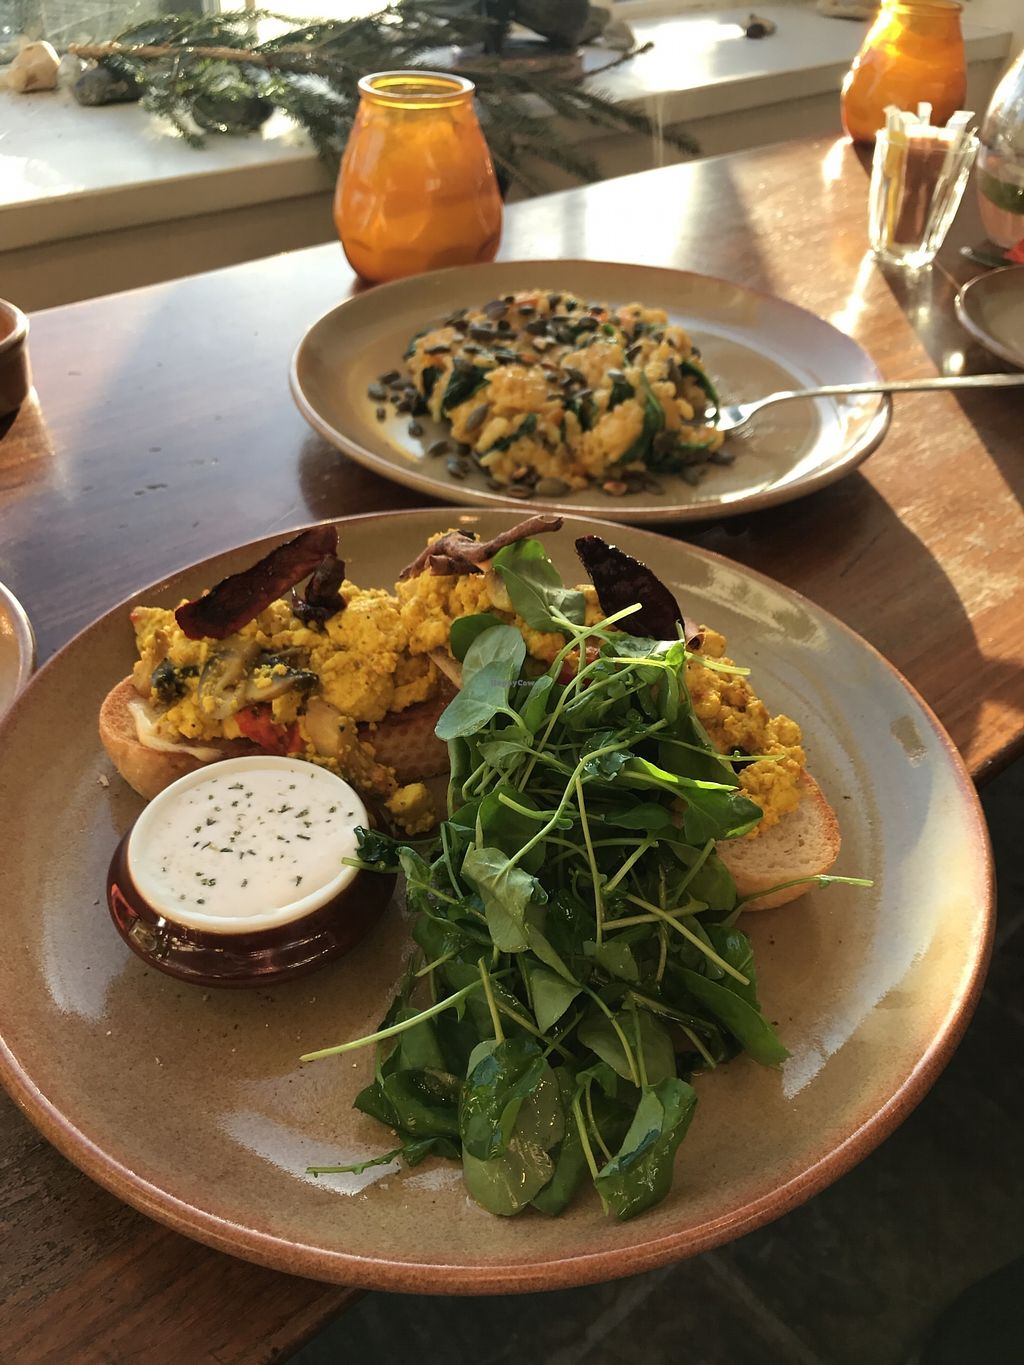 "Photo of St Mary in the Castle Cafe  by <a href=""/members/profile/Bell"">Bell</a> <br/>Smoked tofu scramble on sourdough and pumpkin risotto. All vegan! And delicious!  <br/> November 26, 2017  - <a href='/contact/abuse/image/104766/329371'>Report</a>"